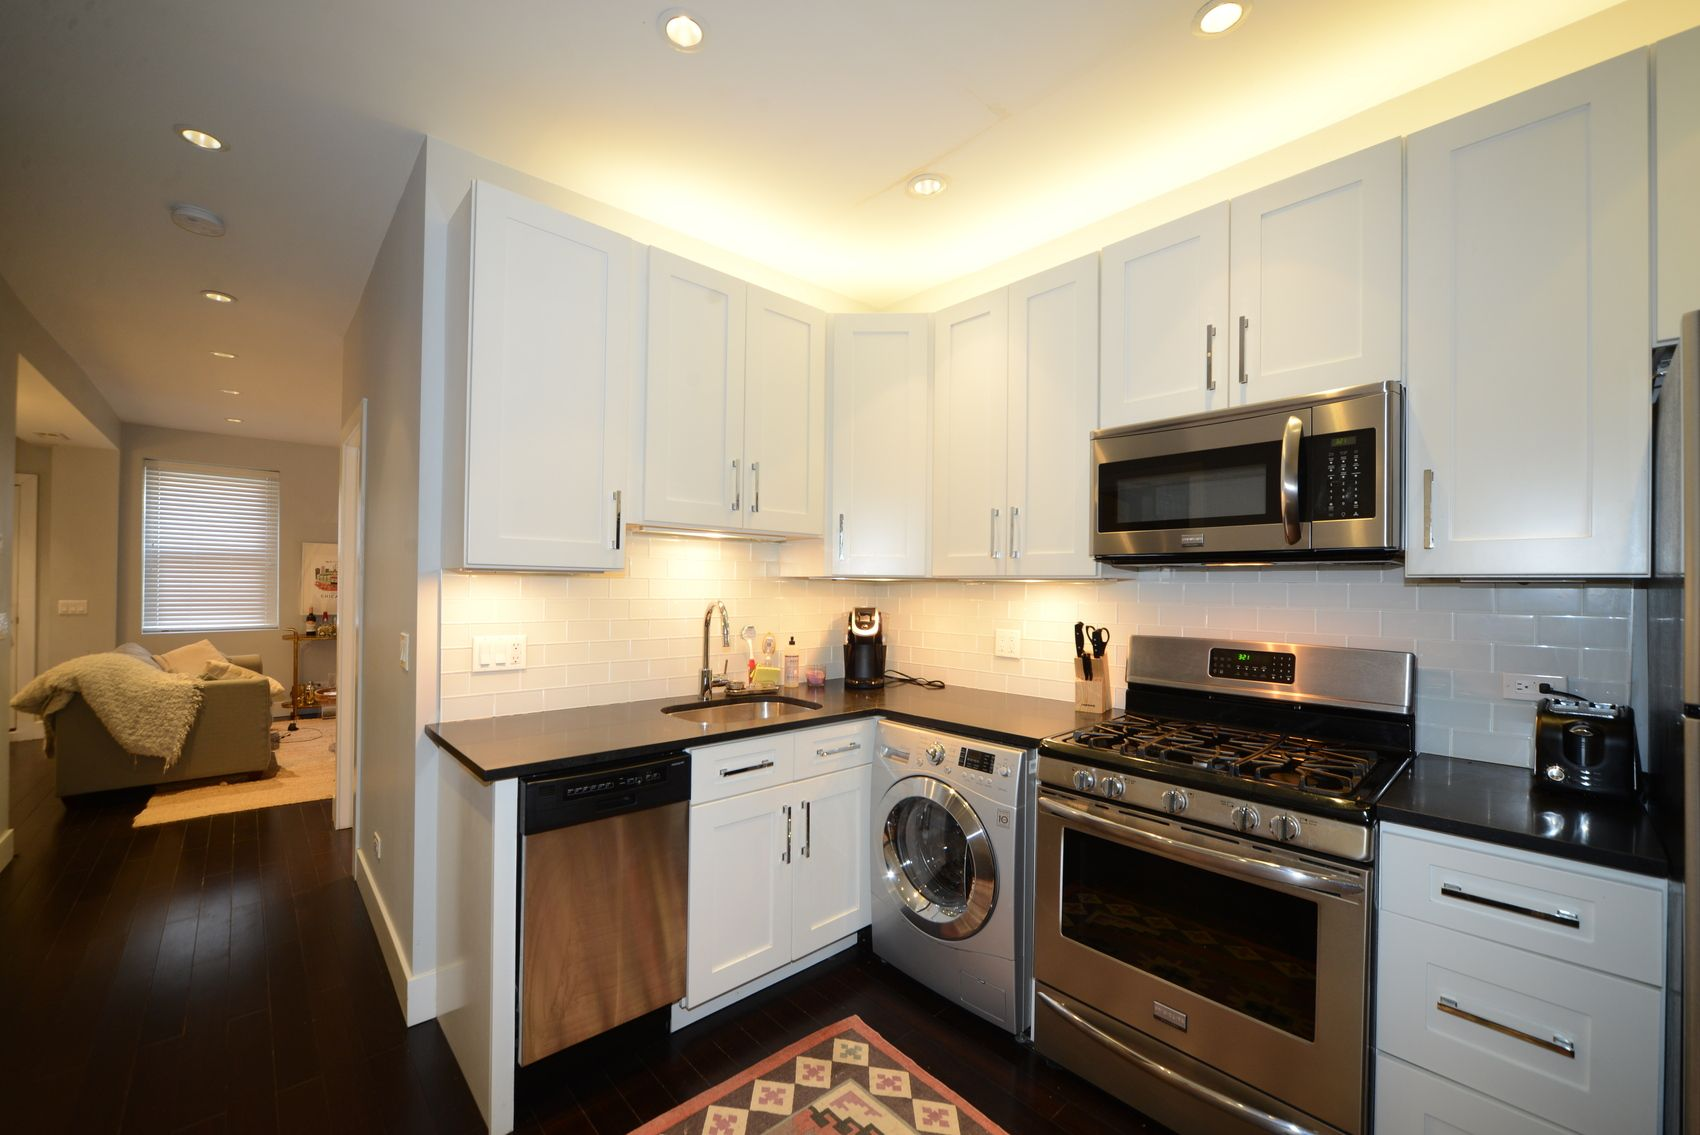 Modern Apartment Kitchen With White Cabinets Stainless Steel